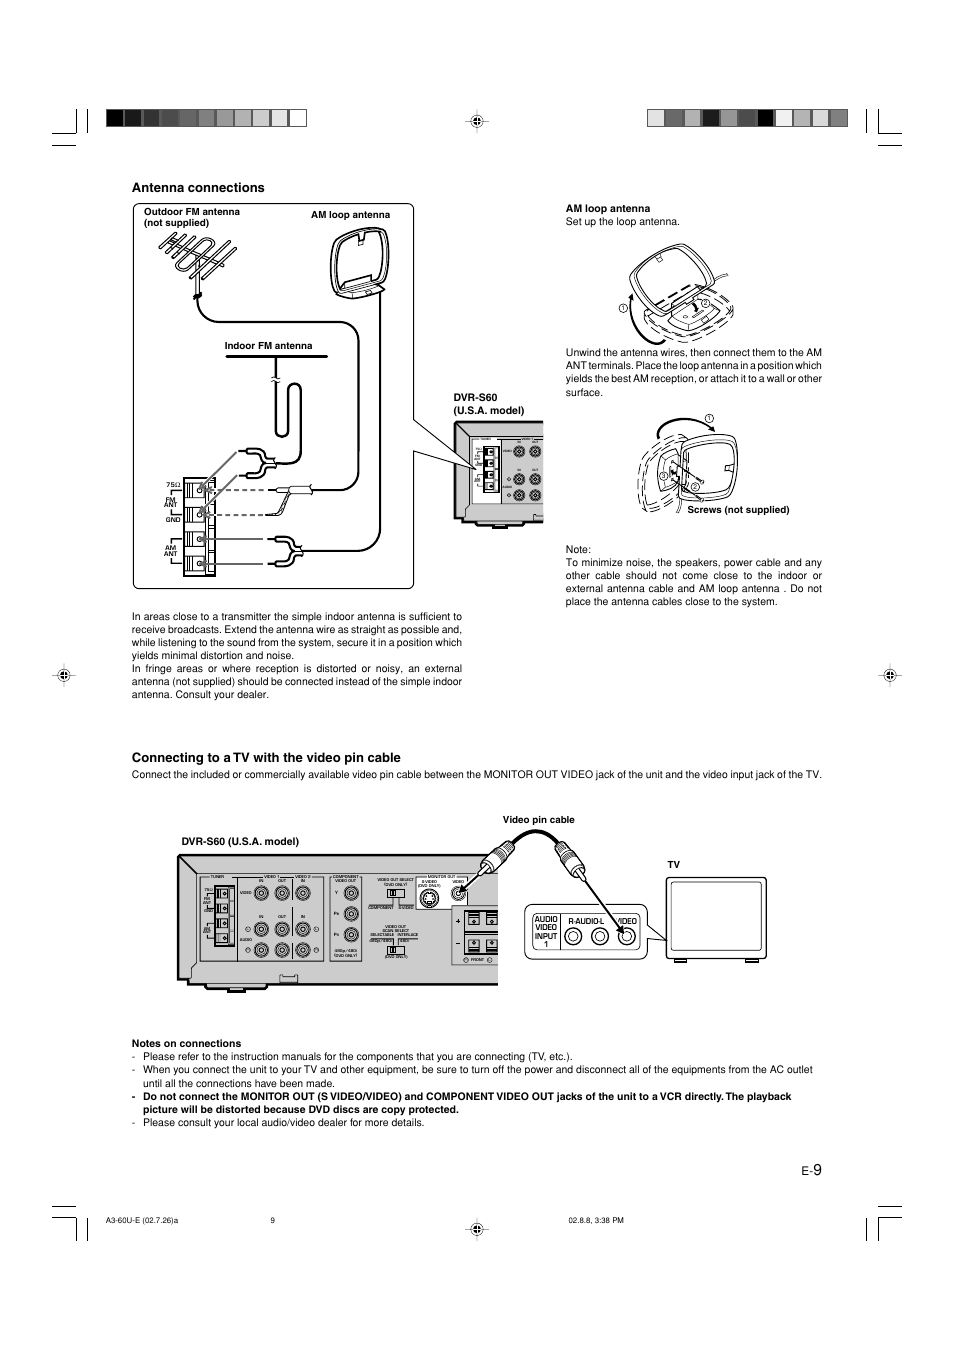 medium resolution of antenna connections connecting to a tv with the video pin cable dvr s60 yamaha dvx s60 user manual page 13 31